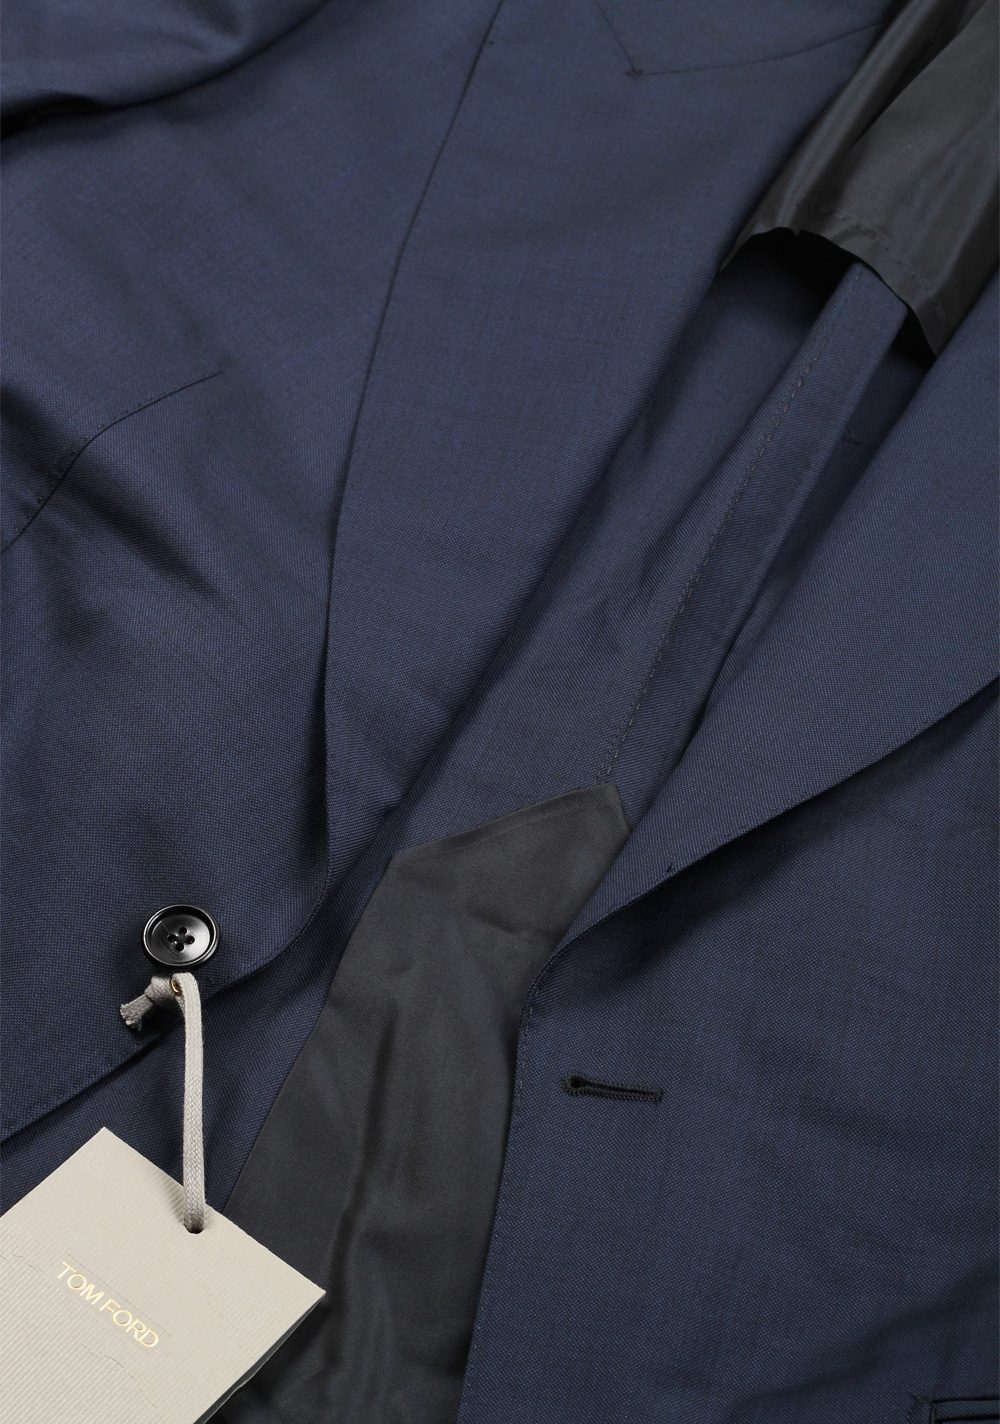 TOM FORD Shelton Blue Suit Size 48 / 38R U.S. In Wool | Costume Limité